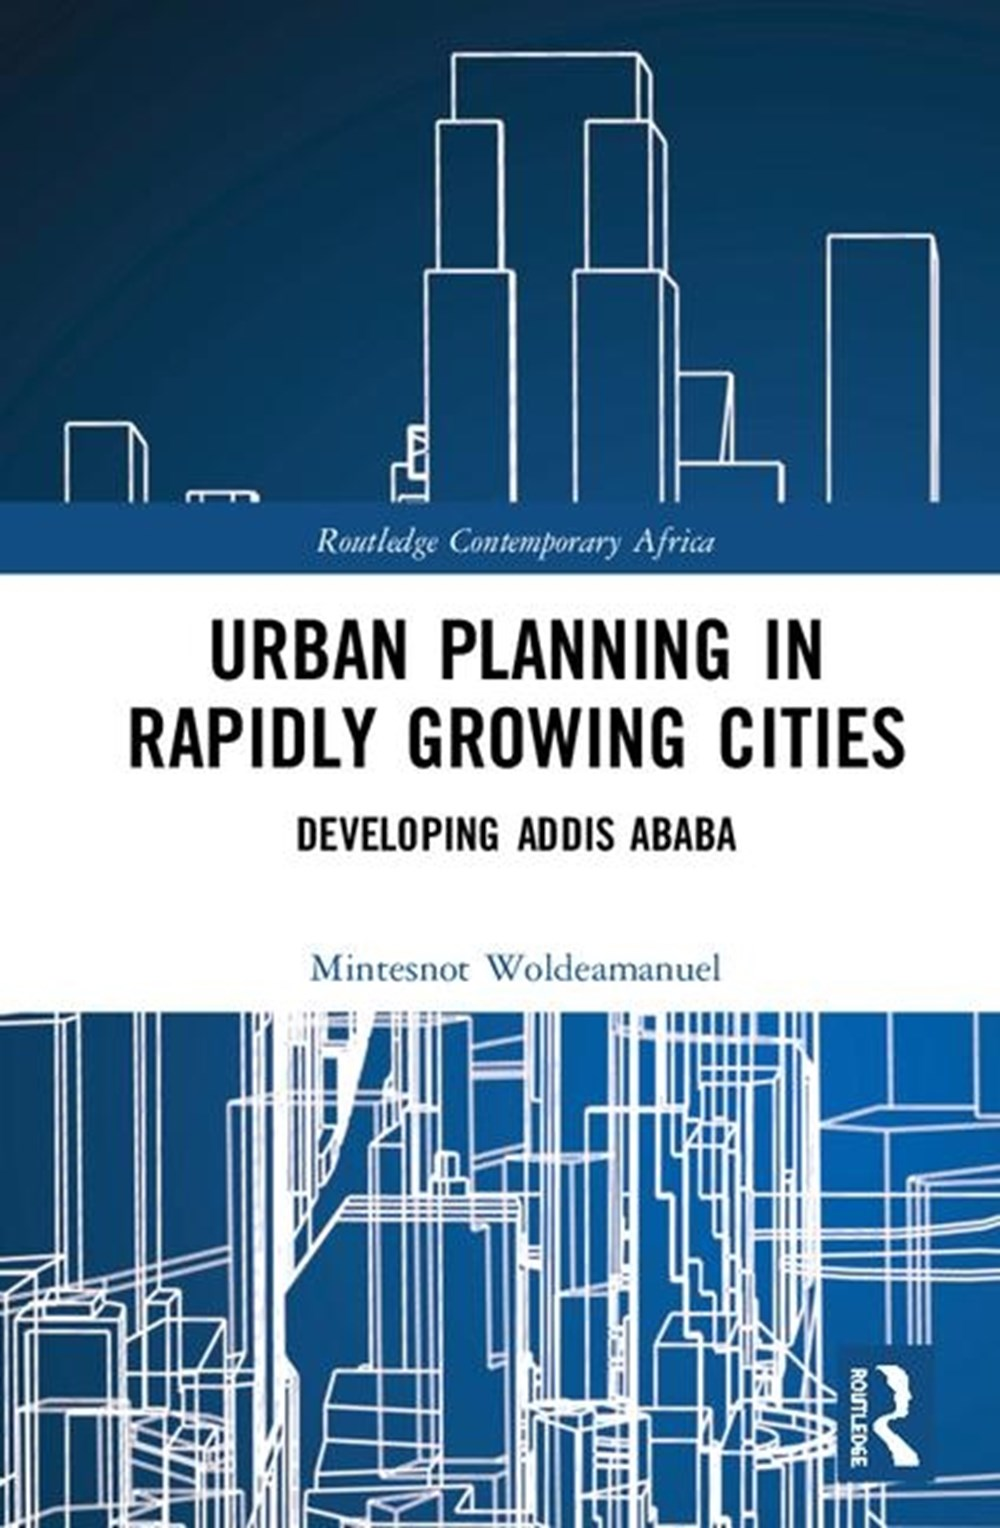 Urban Issues in Rapidly Growing Cities Planning for Development in Addis Ababa